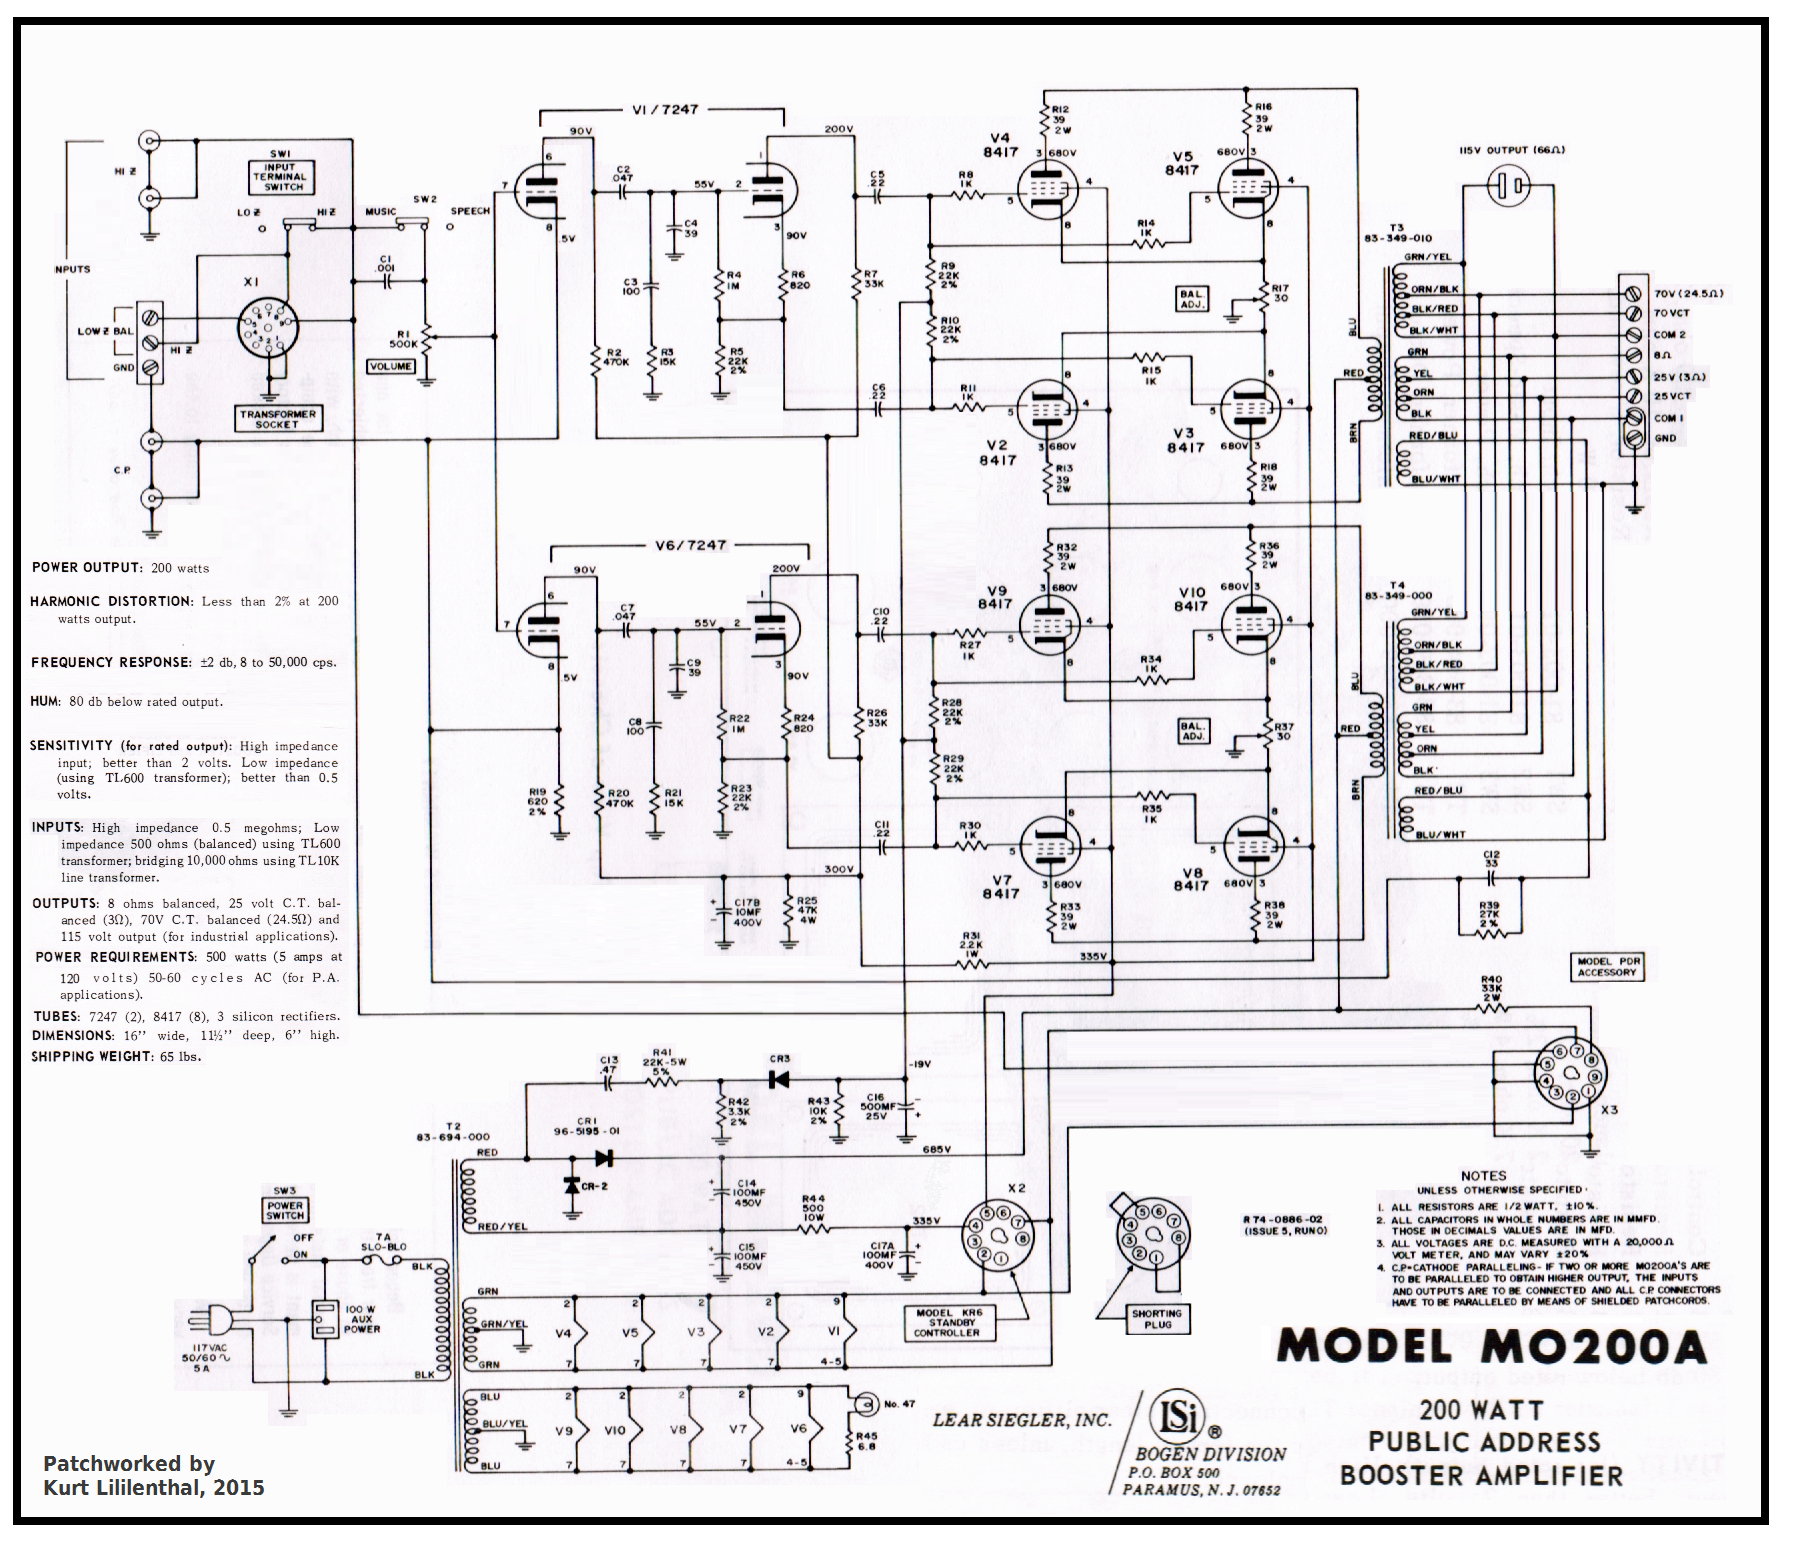 Bogen MO 200A 8417 x 8 PP ed 100 amplifiers part 4 , 1959 82 lilienthal engineering Single Phase Transformer Wiring Diagram at reclaimingppi.co